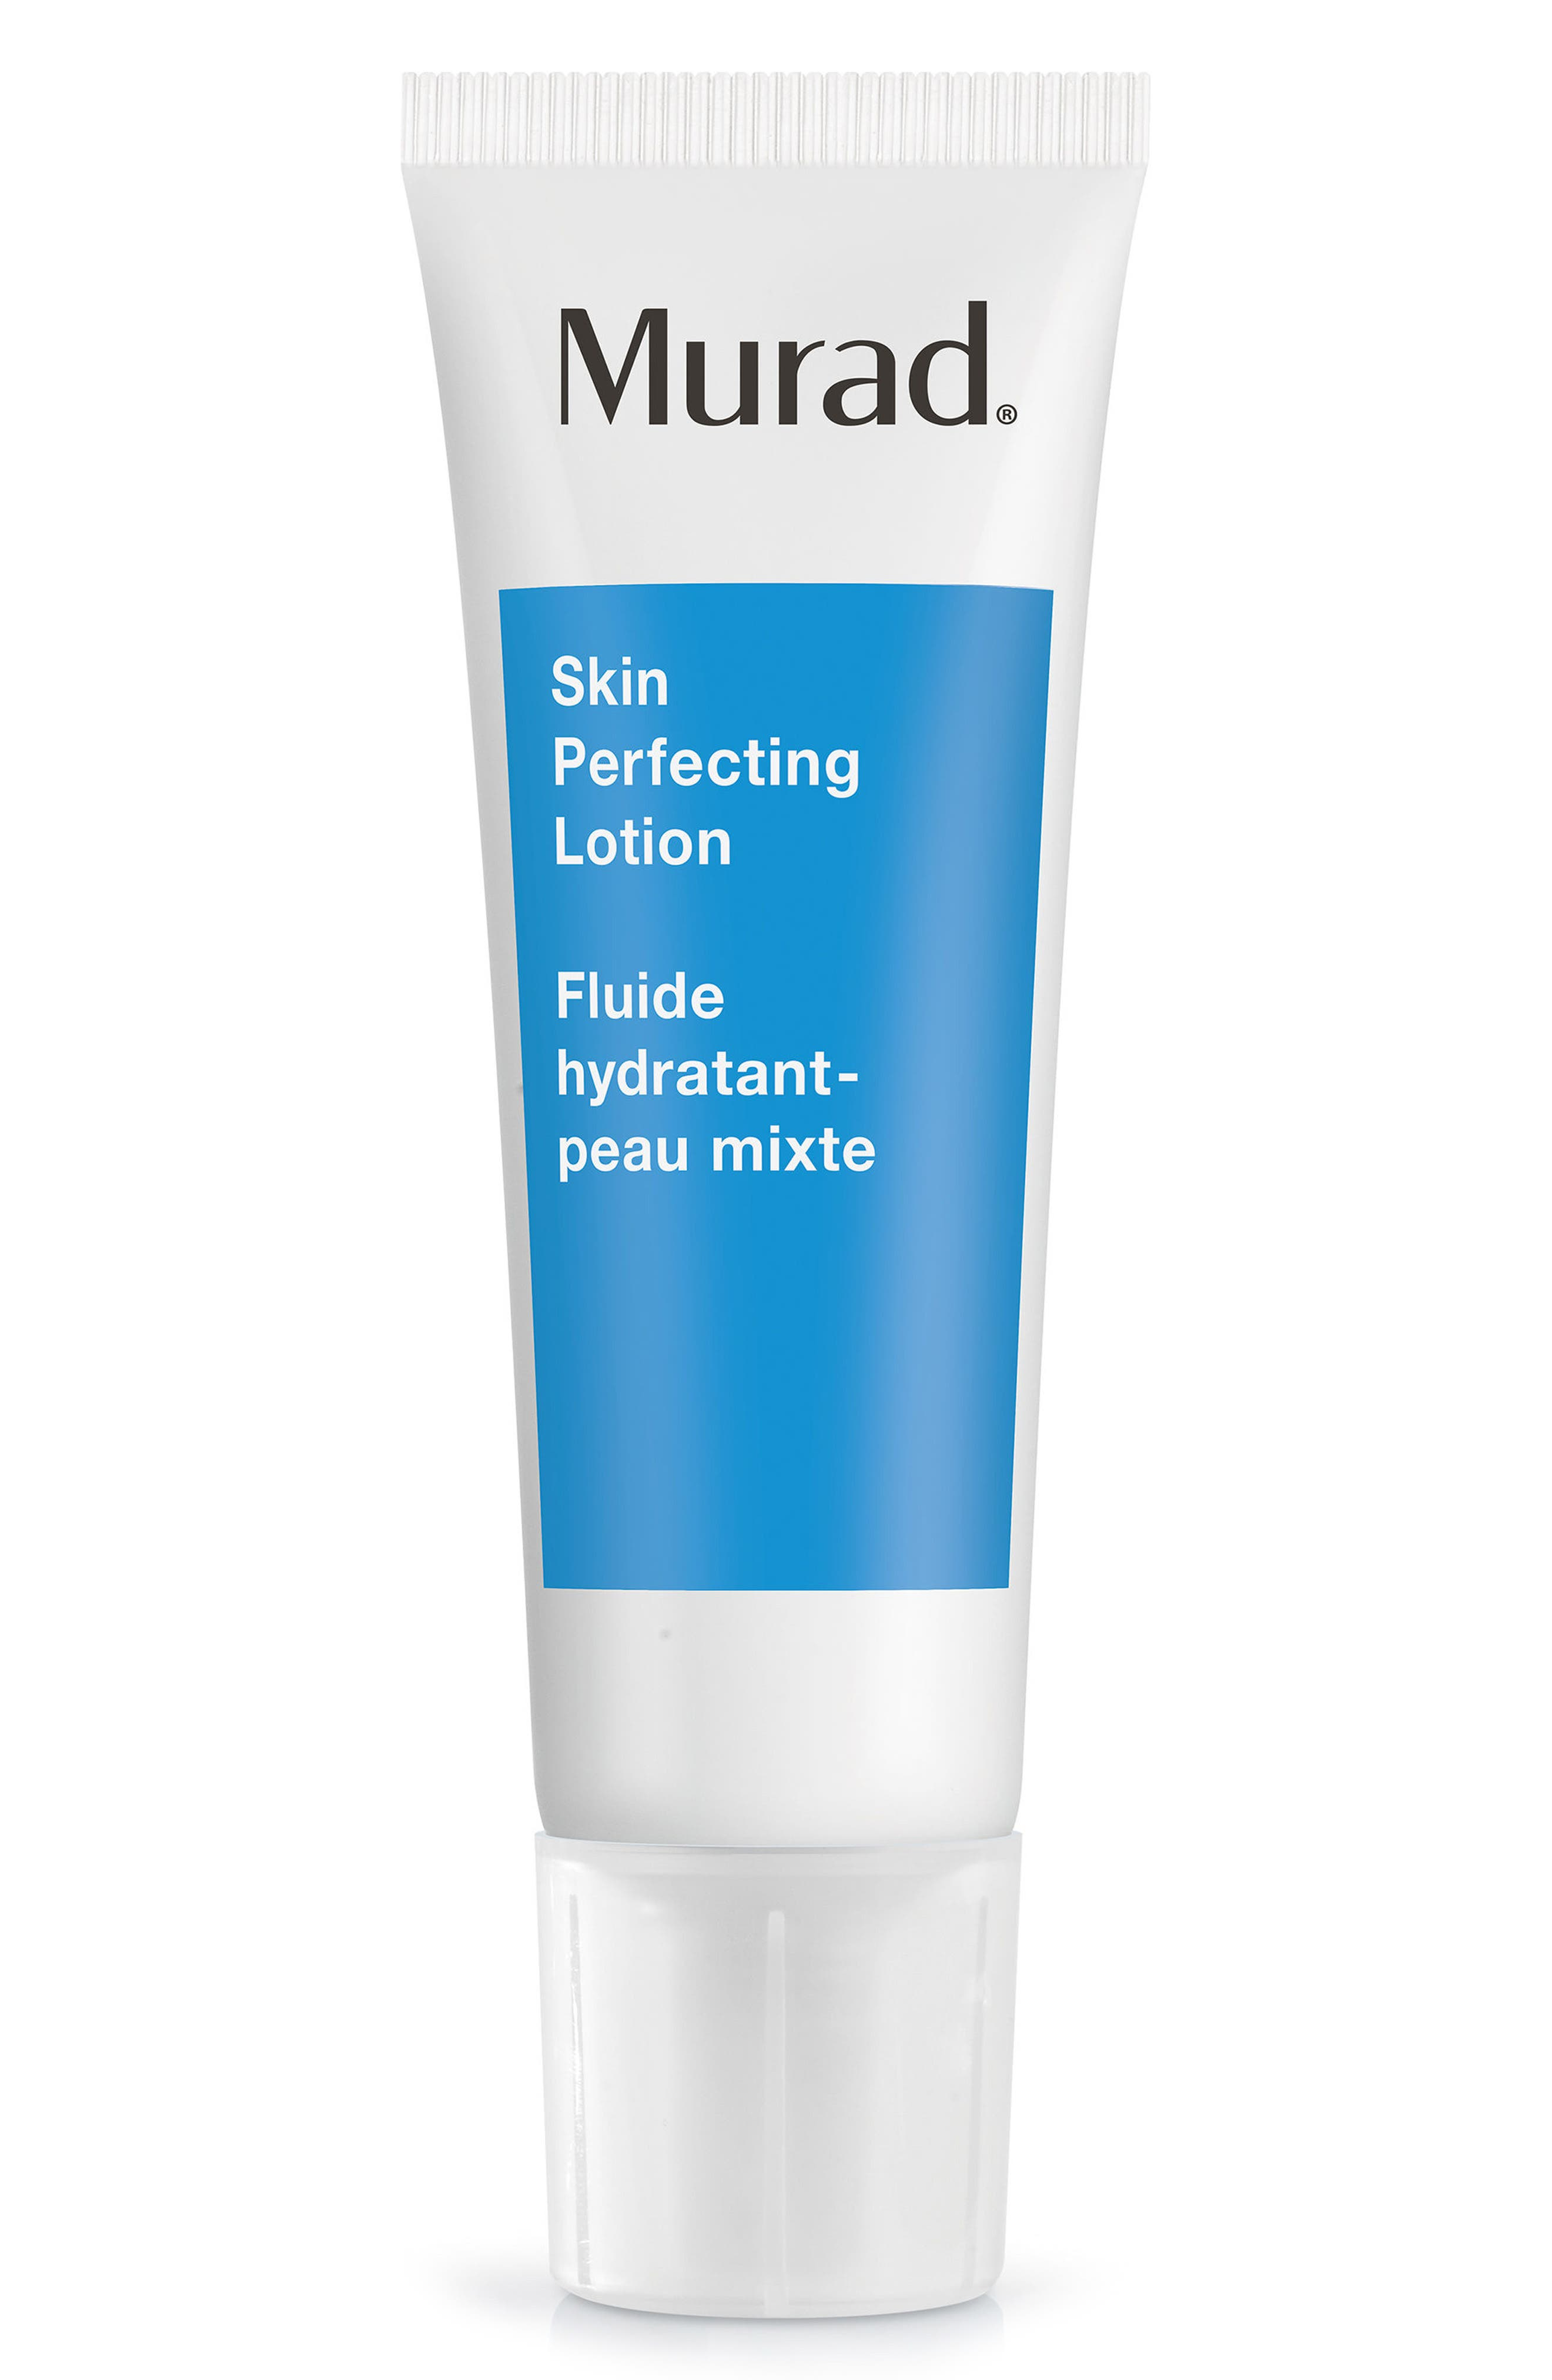 Murad® Skin Perfecting Lotion